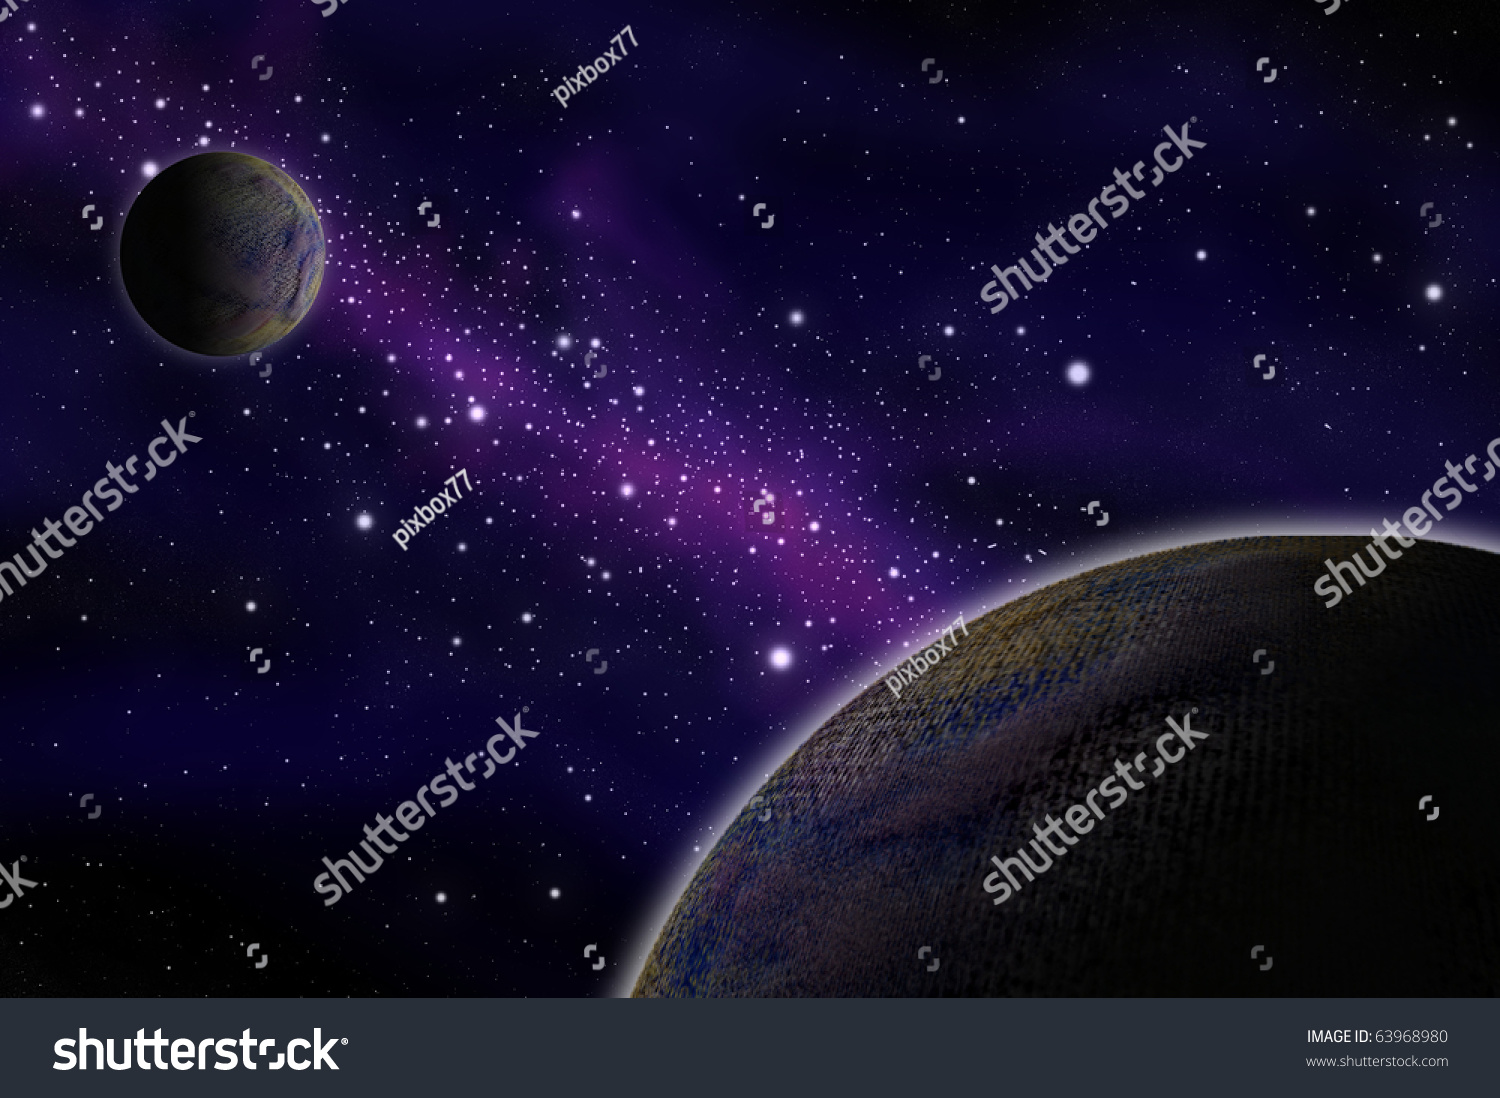 Star Space Astronomy Concept Stock Illustration 63968980